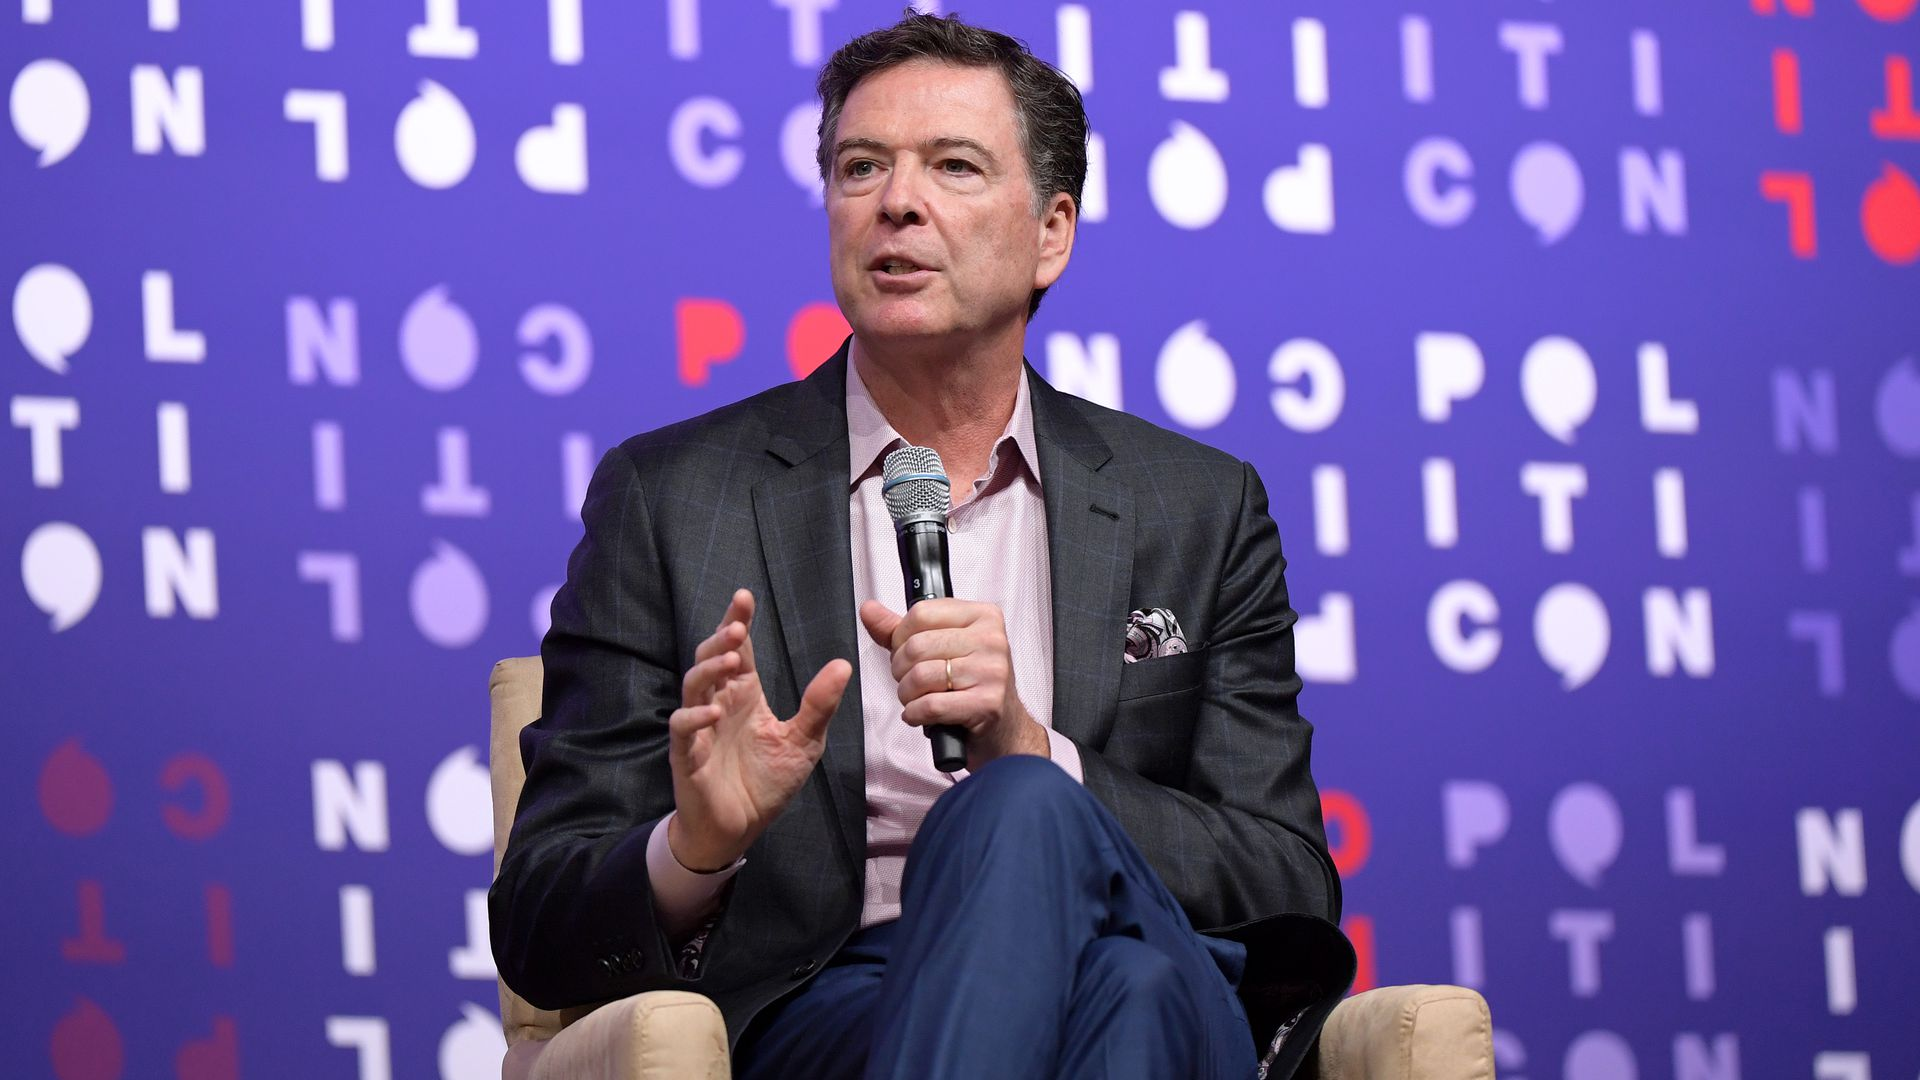 Former FBI Director James Comey sits in a chair and speaks into a mic as he is interviewed.